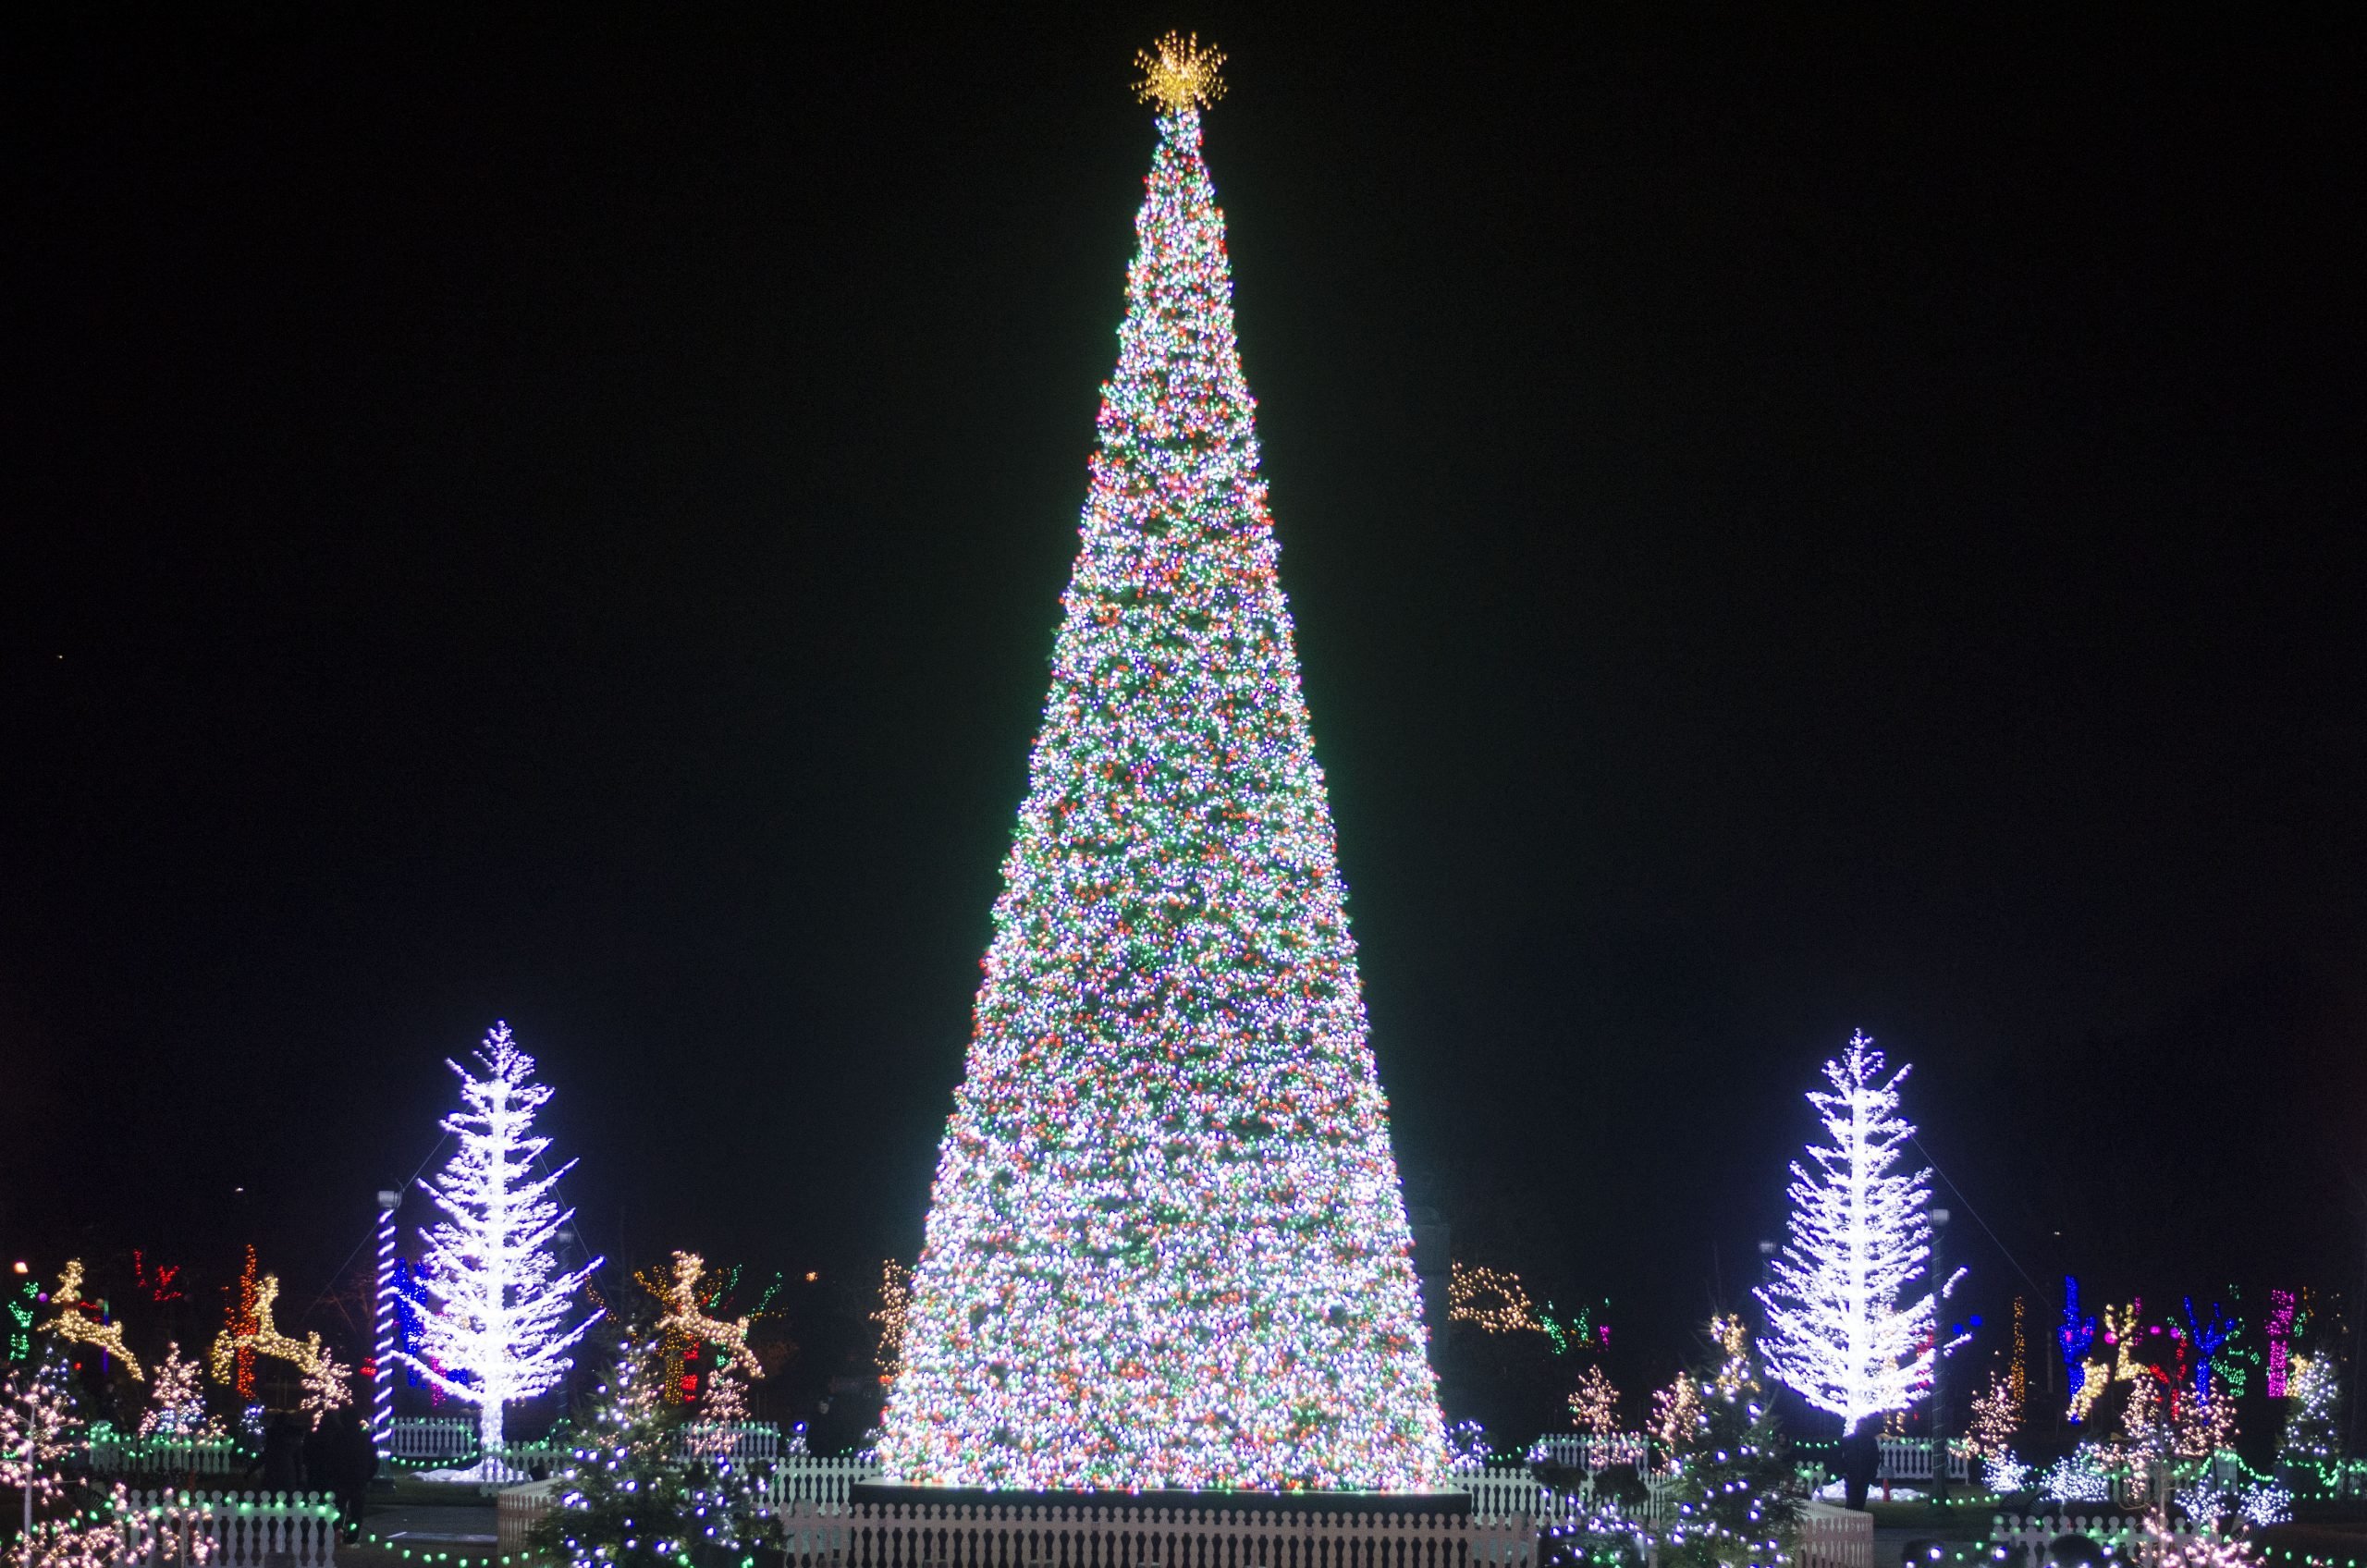 The giant Christmas Tree at Bright Lights Windsor in Windsor, Ontario.